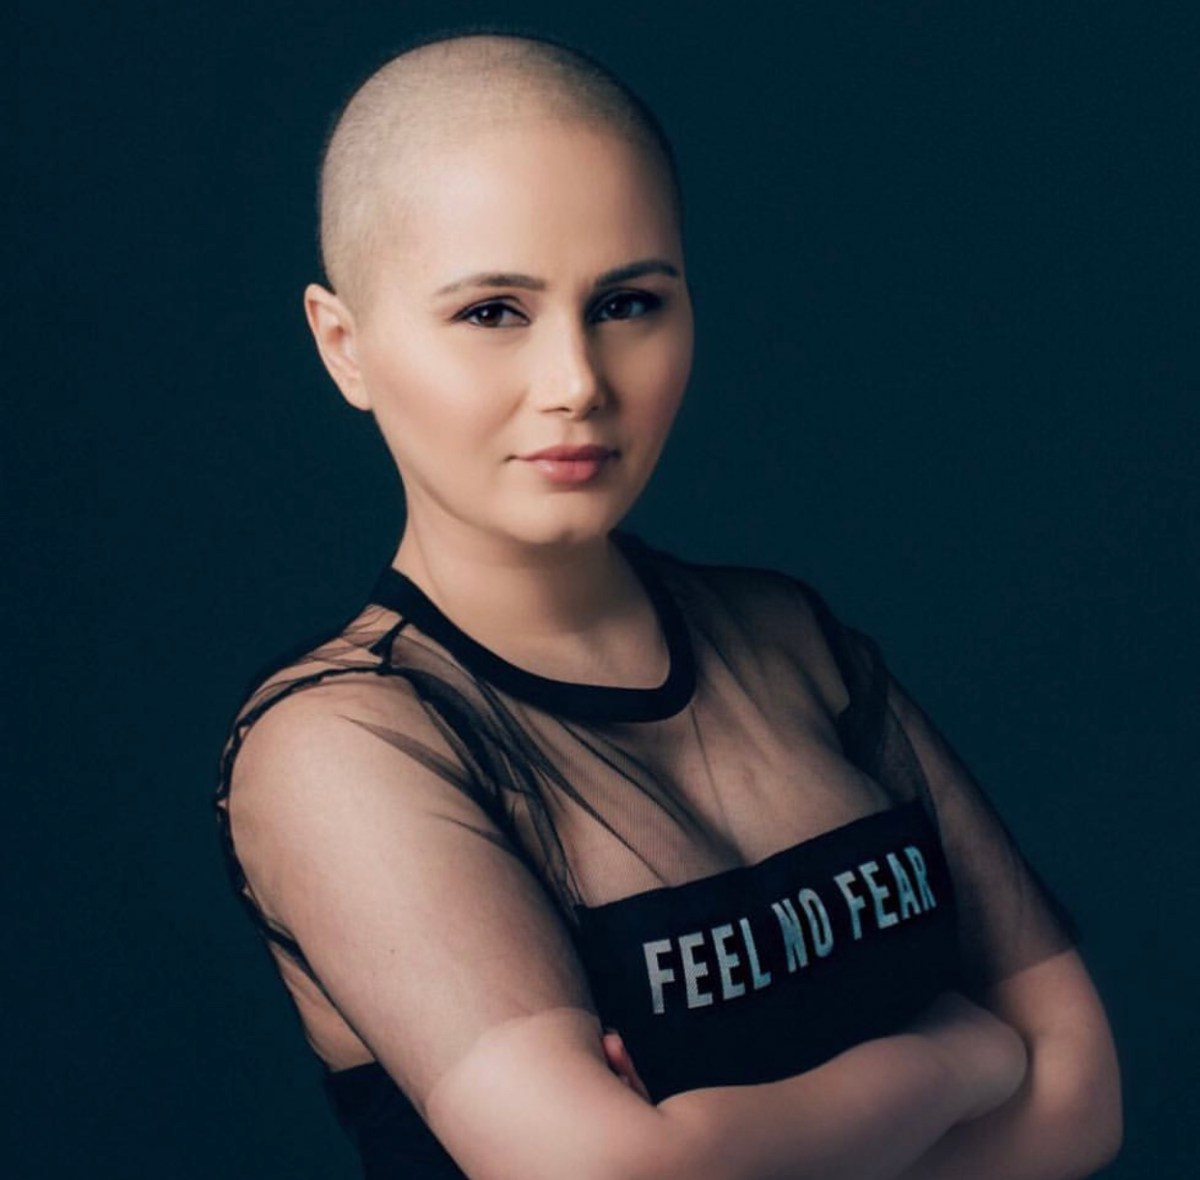 Ghazaleh Guglielmucci: Living a Dream while overcoming Cancer